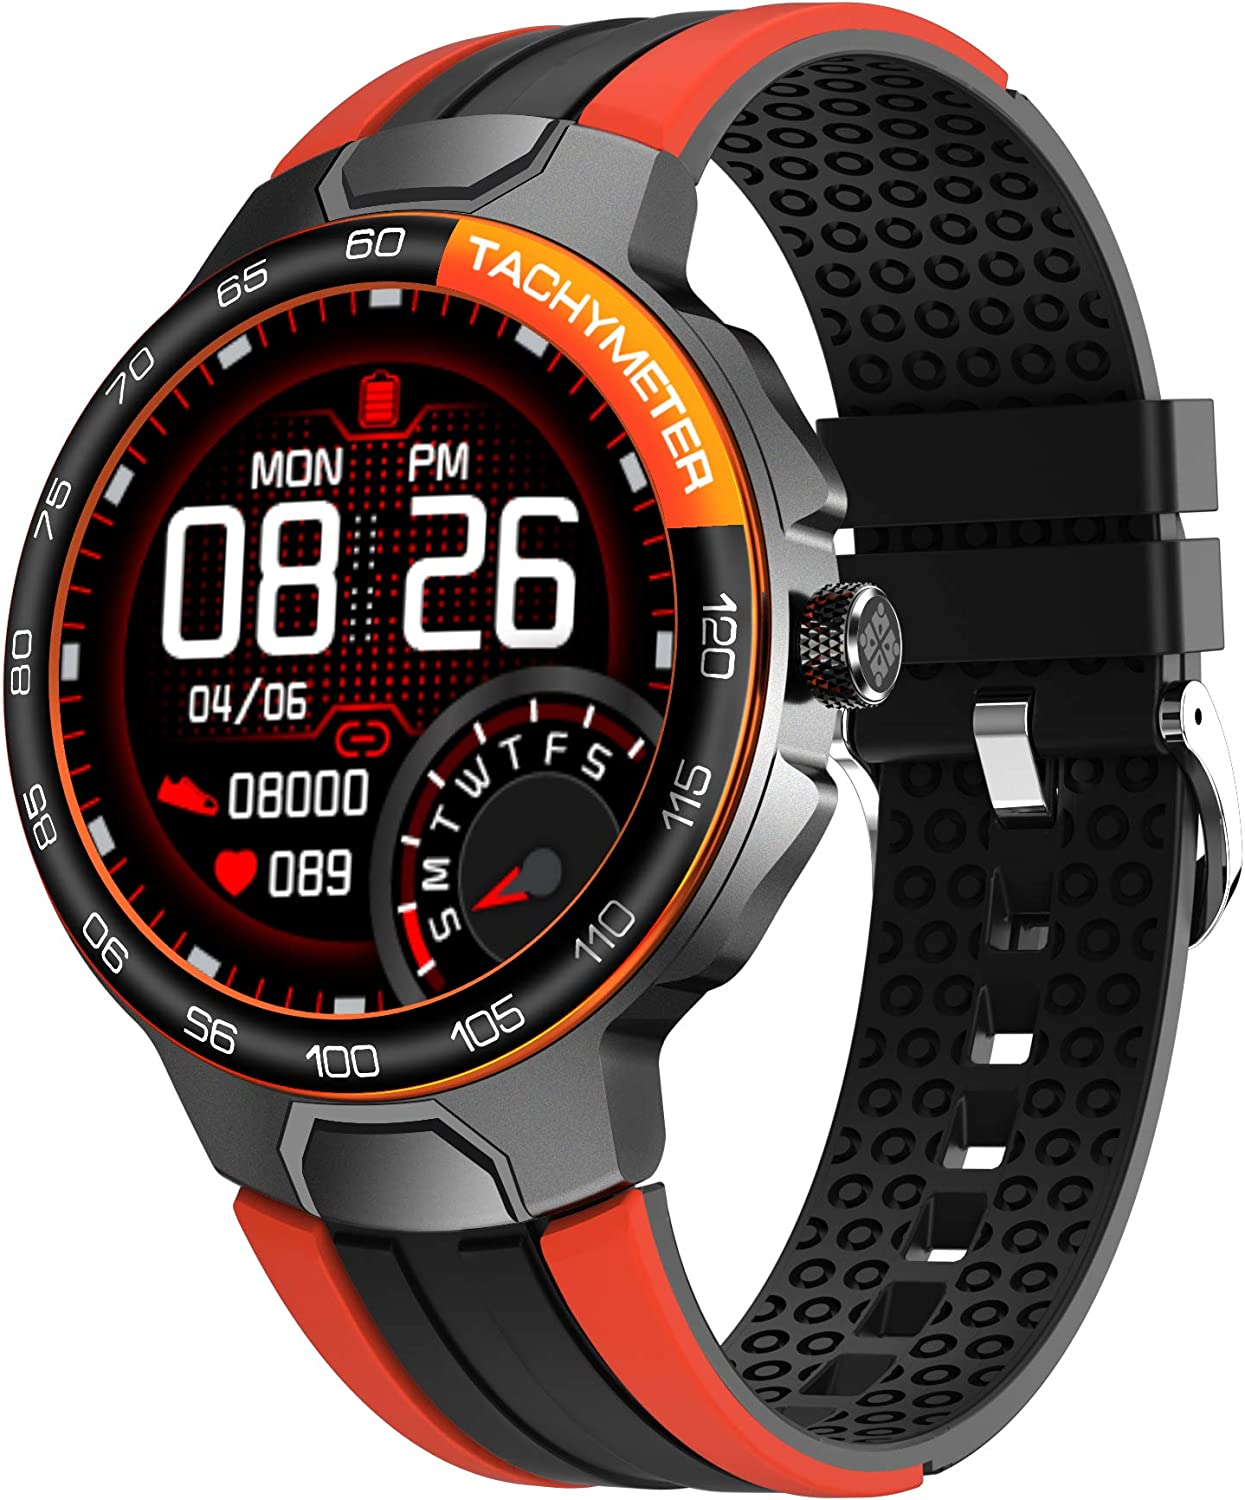 XIAOLO Smart Max 72% OFF Watch for Android Phones iOS Fitness Health Sport shopping